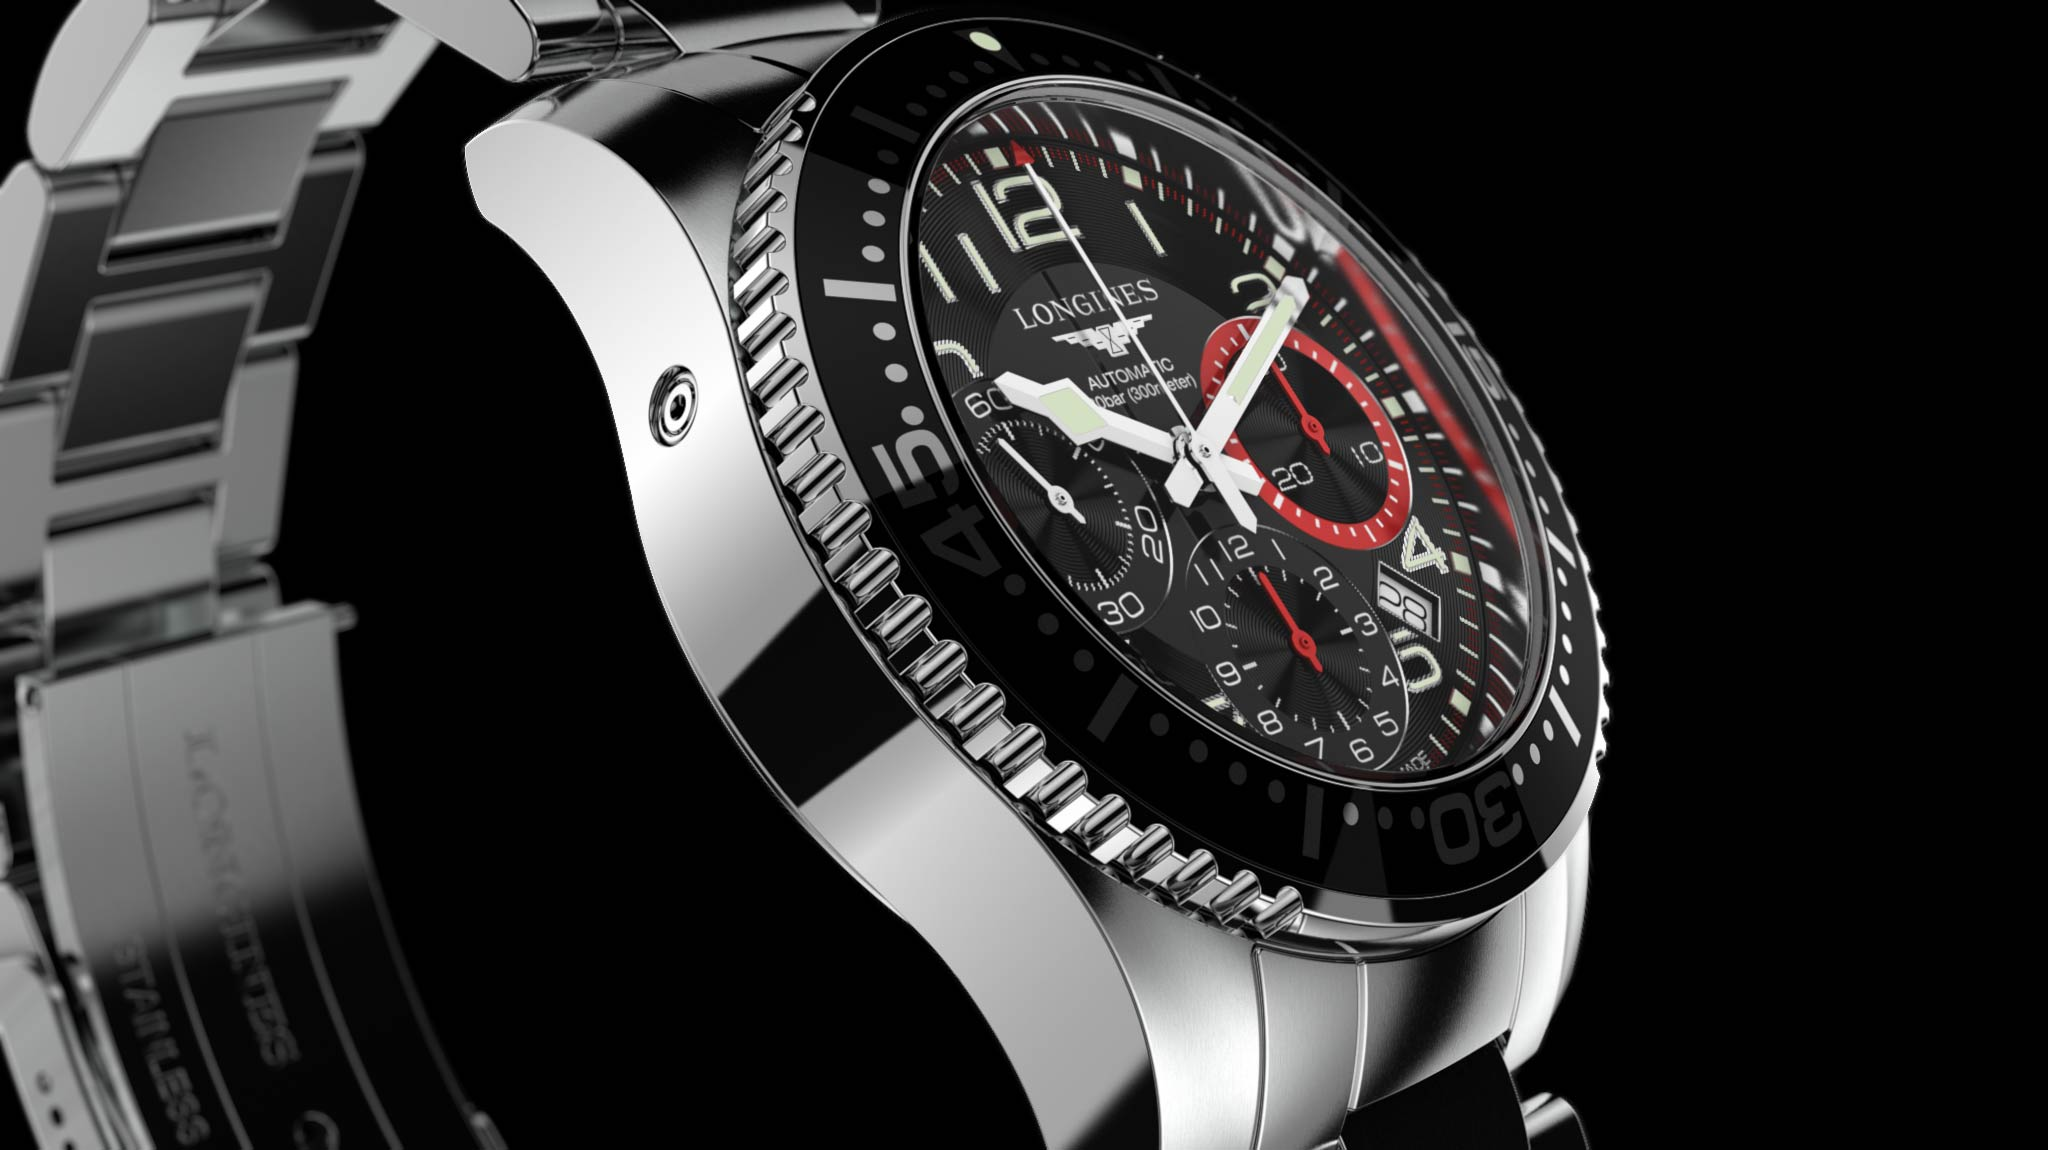 3DVISION NYVALIS 2014 LONGINES HydroConquest 03